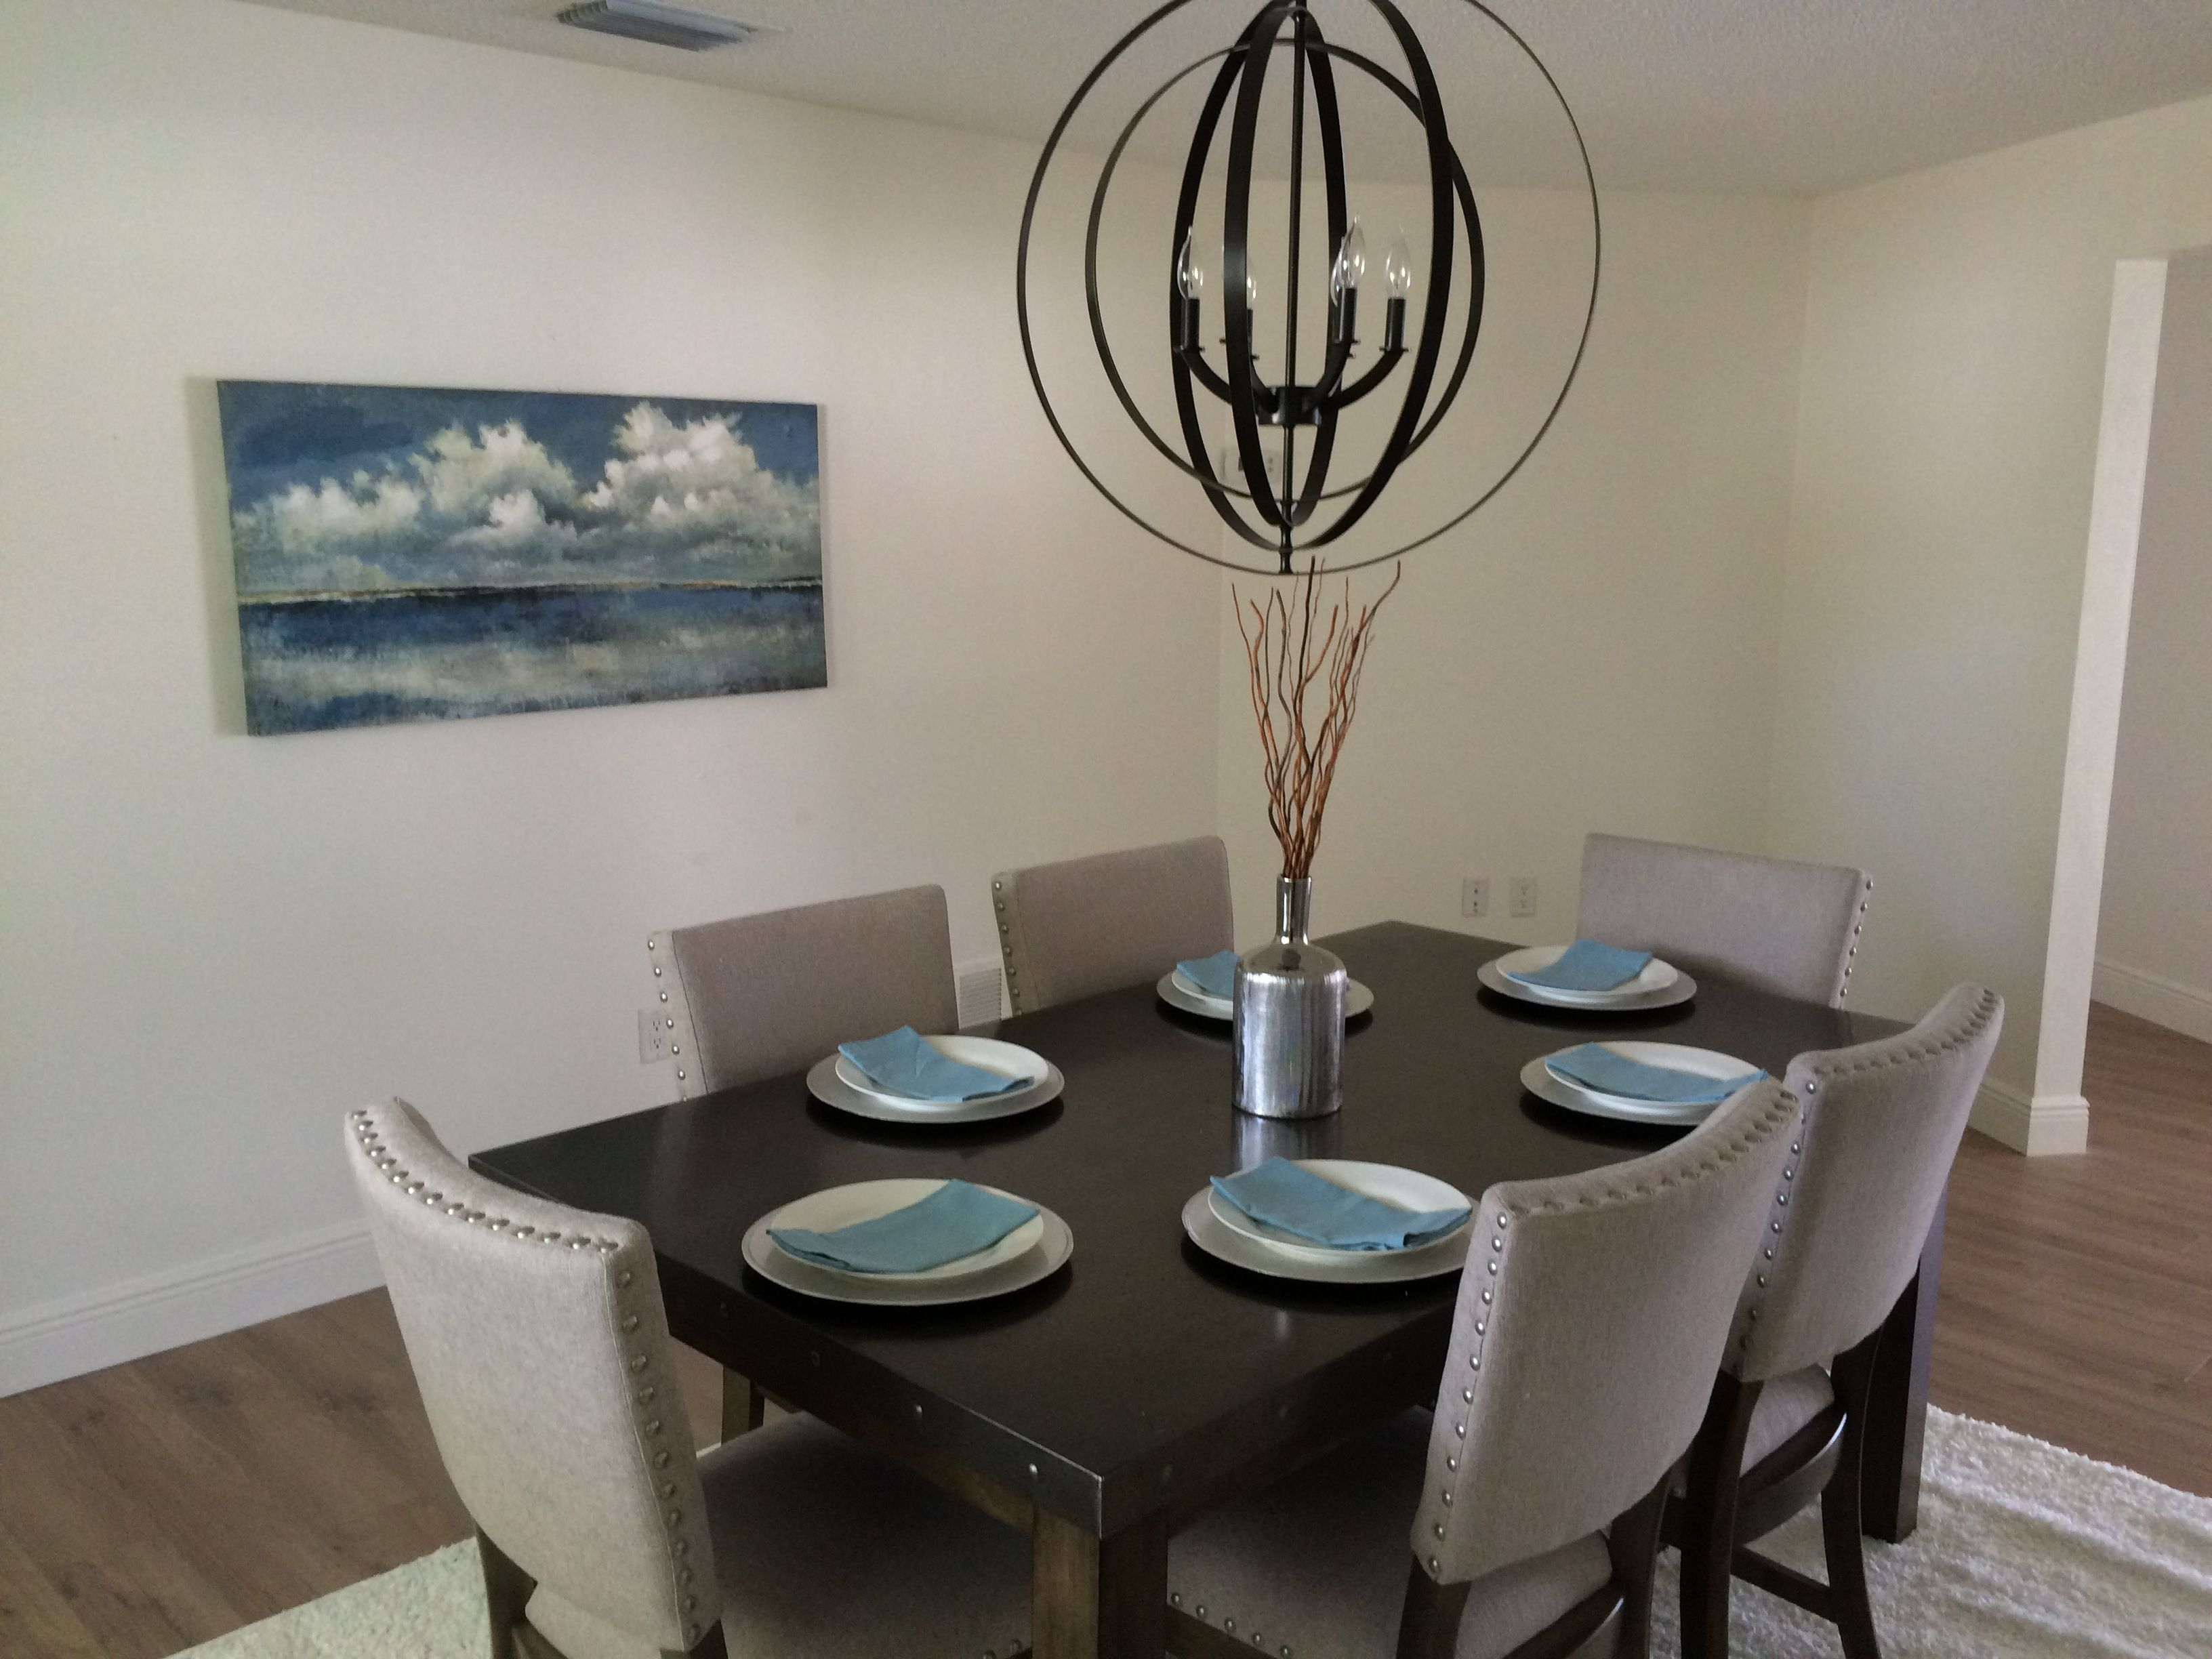 Simple Tasteful Staged Dining Room Again Using Pop Of Color With Blue Plates And Paintings Yet Still Let S Buyers S Home Staging Tips Home Decor Home Staging